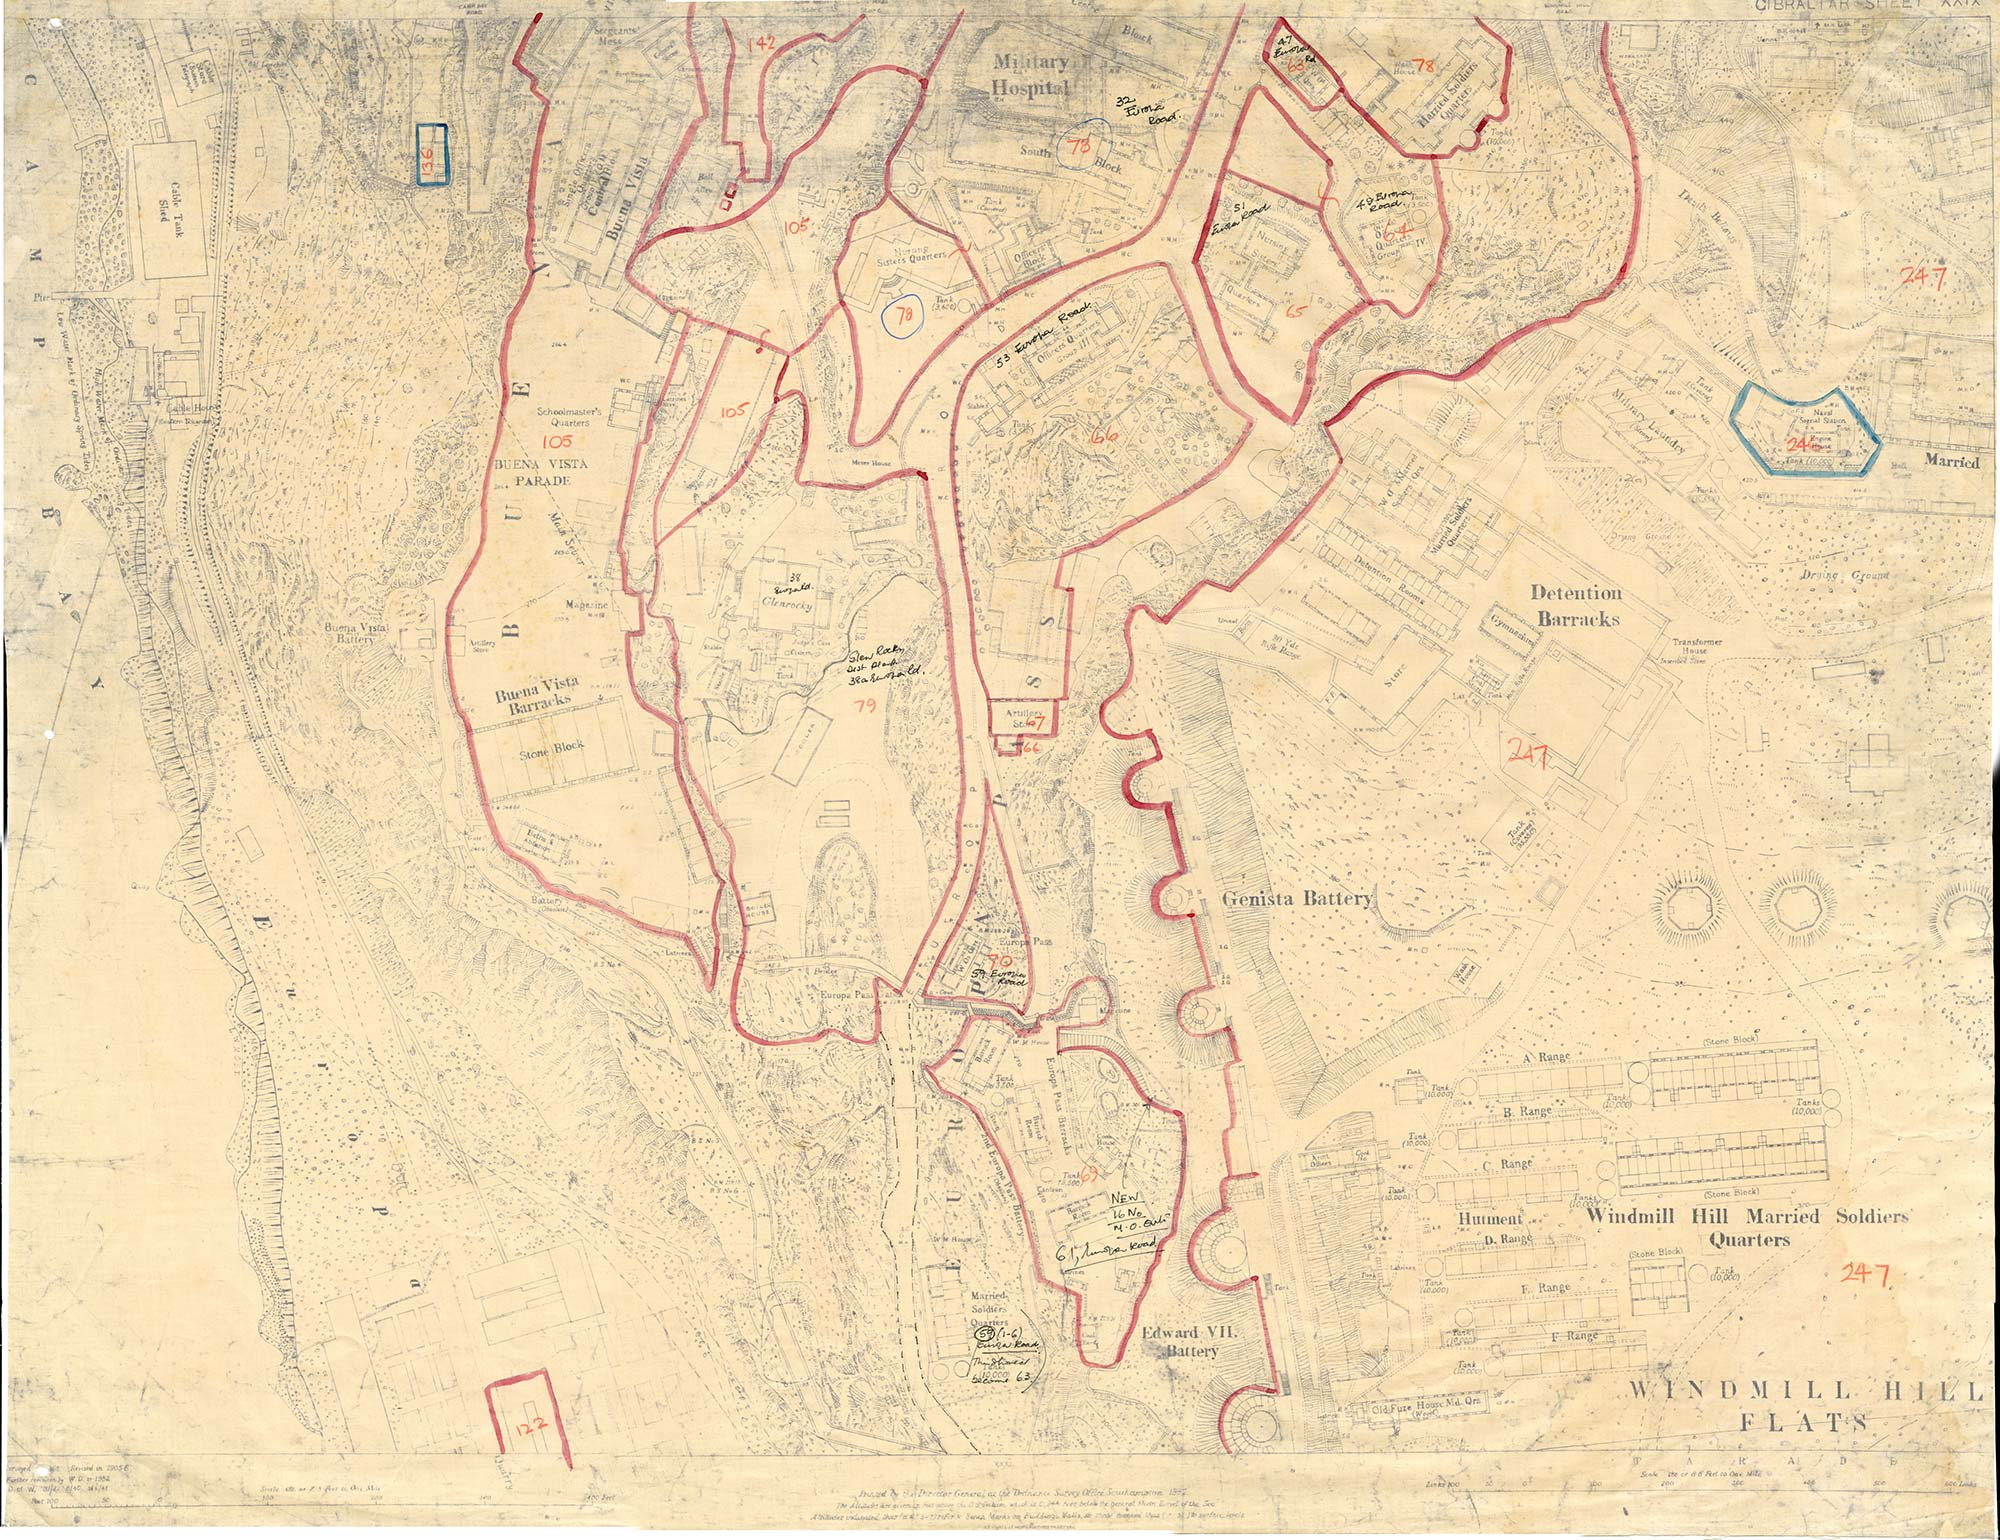 Map-2-Gibraltar-Sheet-39-1941-Buffadero-Training-Area-Windy